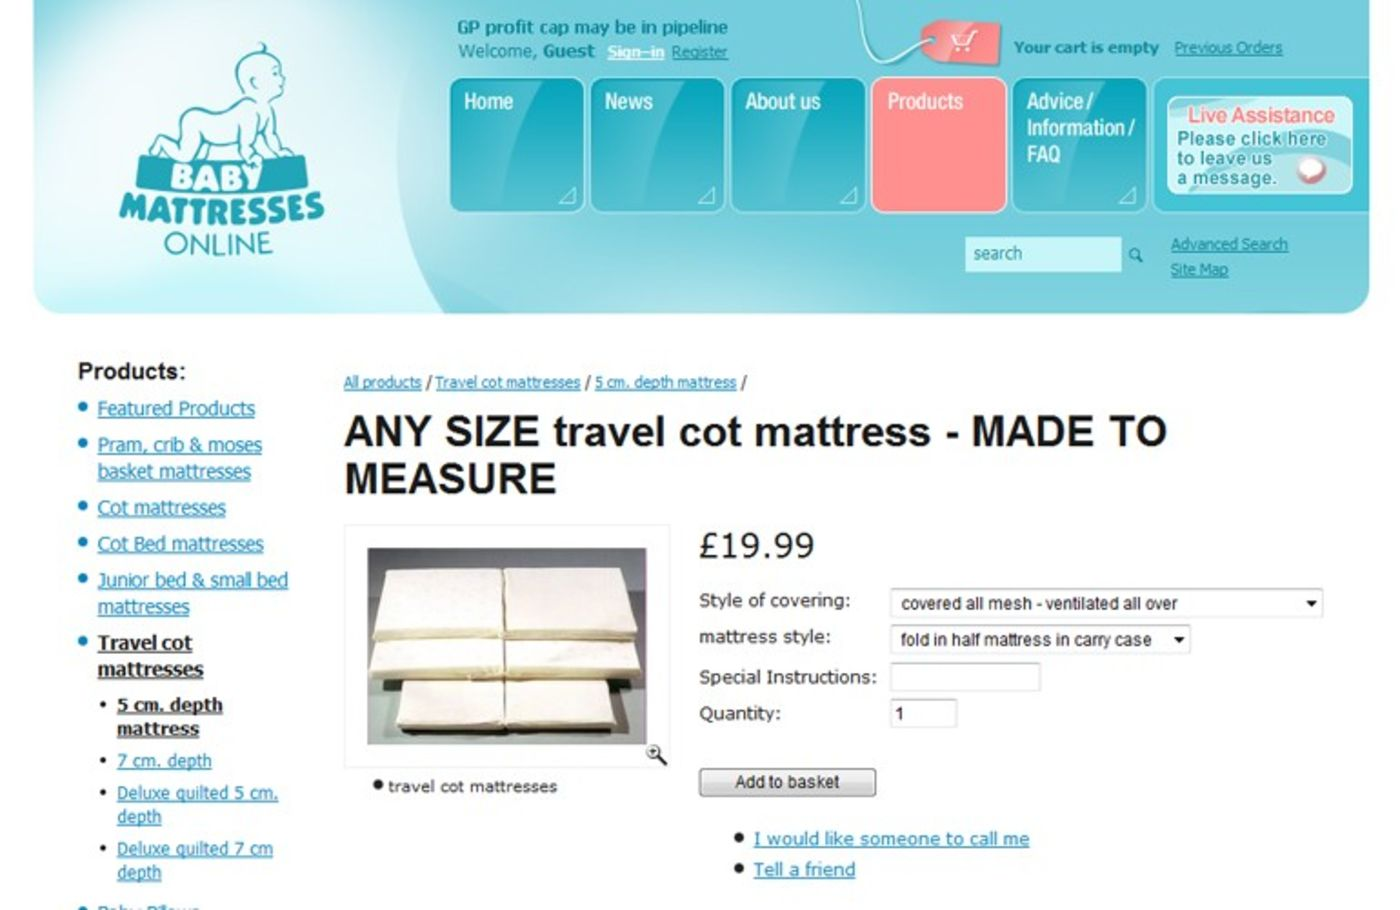 Baby Mattresses Online 2006 Product